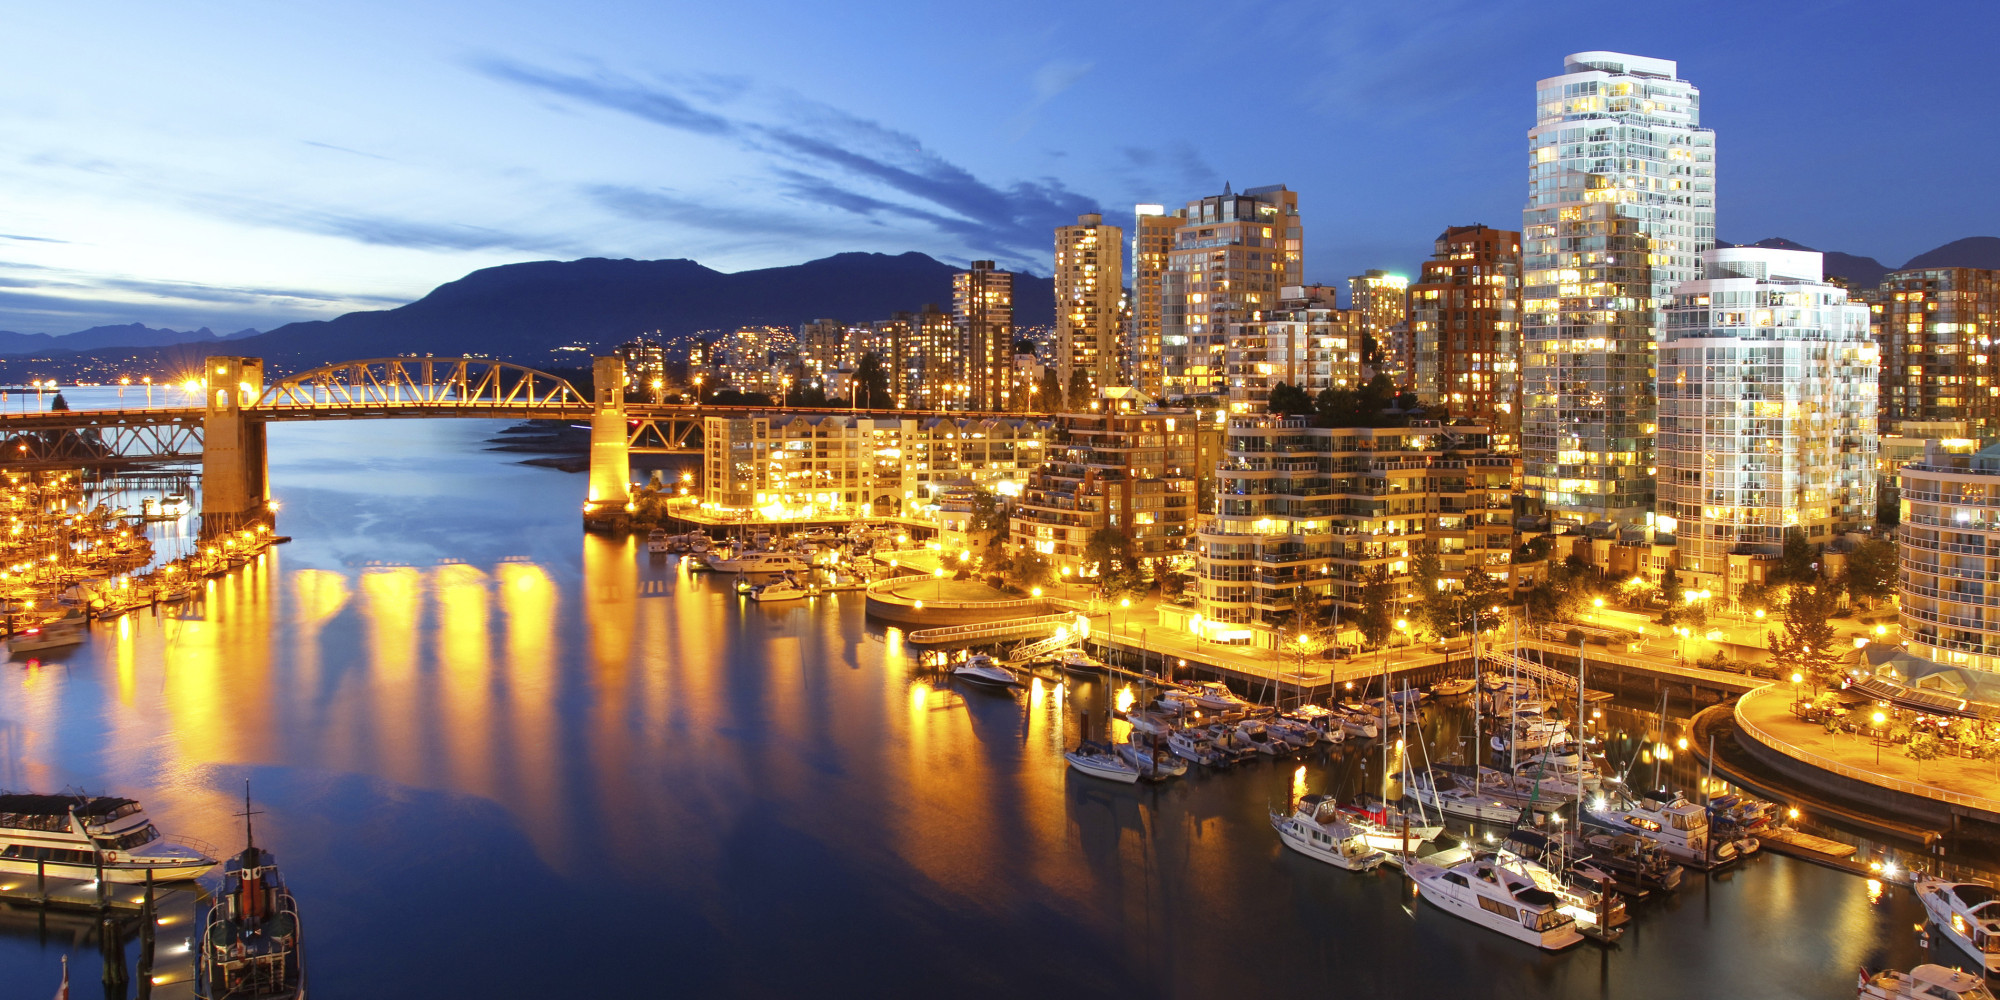 HQ Vancouver Wallpapers | File 683.97Kb